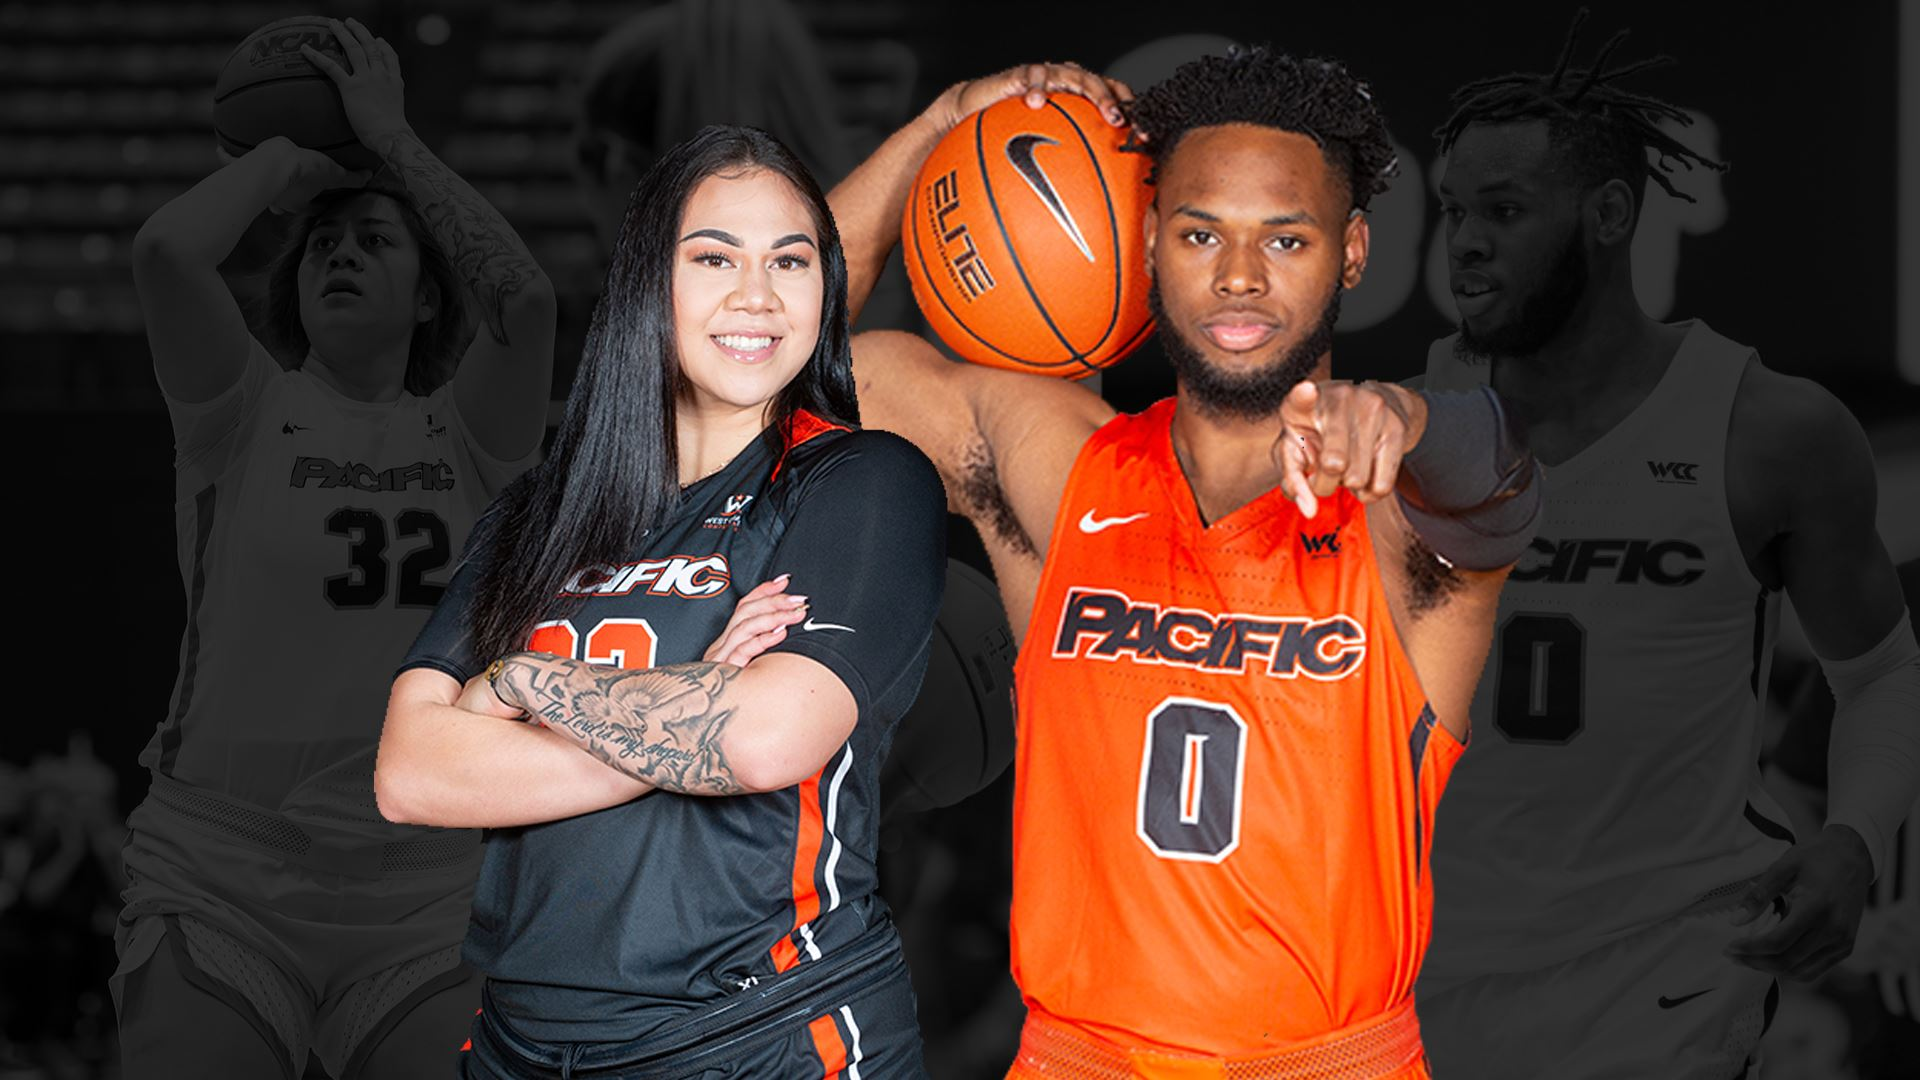 University Of The Pacific Official Athletics Website